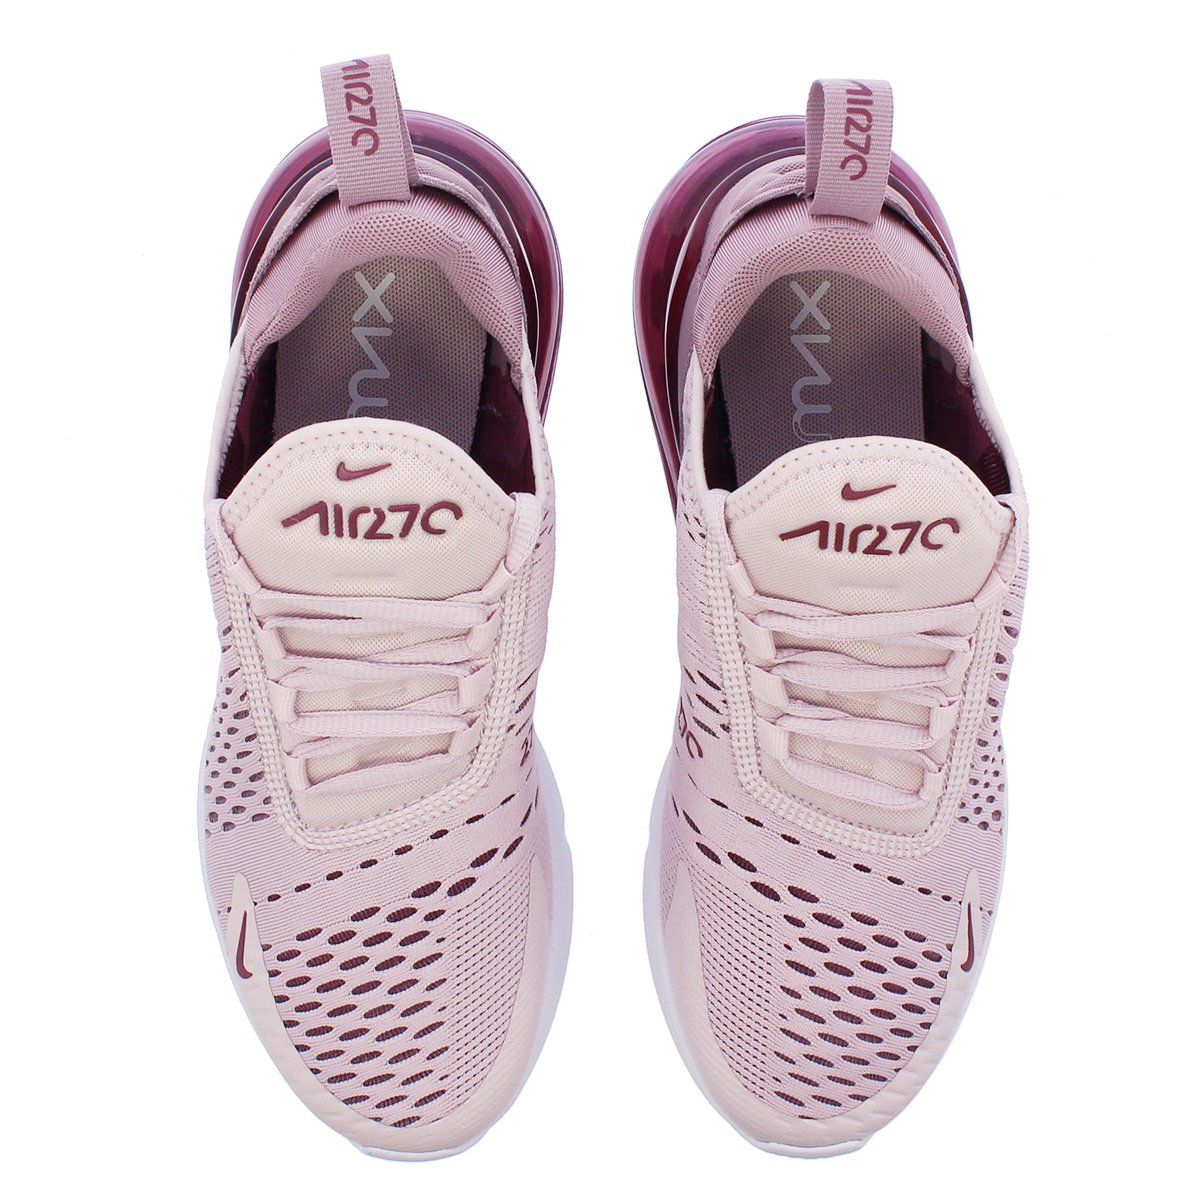 separation shoes a381b f1c79 NIKE WMNS AIR MAX 270 Nike women Air Max 270 BARELY ROSE/WHITE/VINTAGE WINE  ah6789-601-l